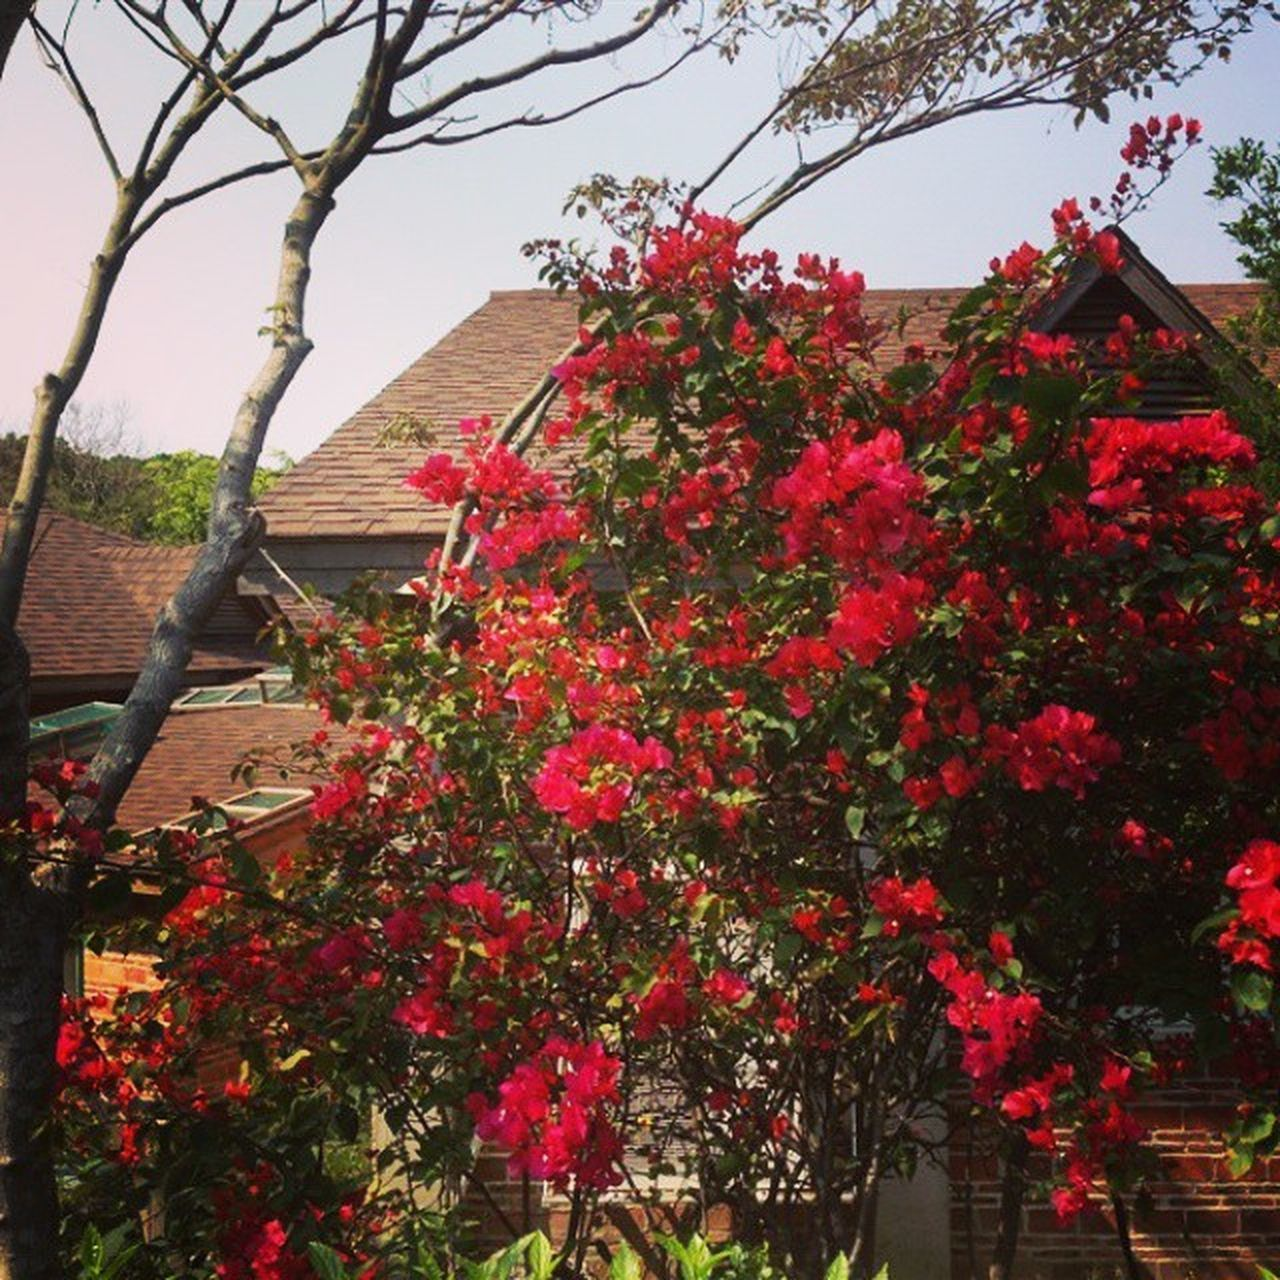 flower, tree, growth, low angle view, no people, day, blossom, fragility, outdoors, branch, red, nature, springtime, beauty in nature, freshness, plant, blooming, bougainvillea, building exterior, flower head, close-up, sky